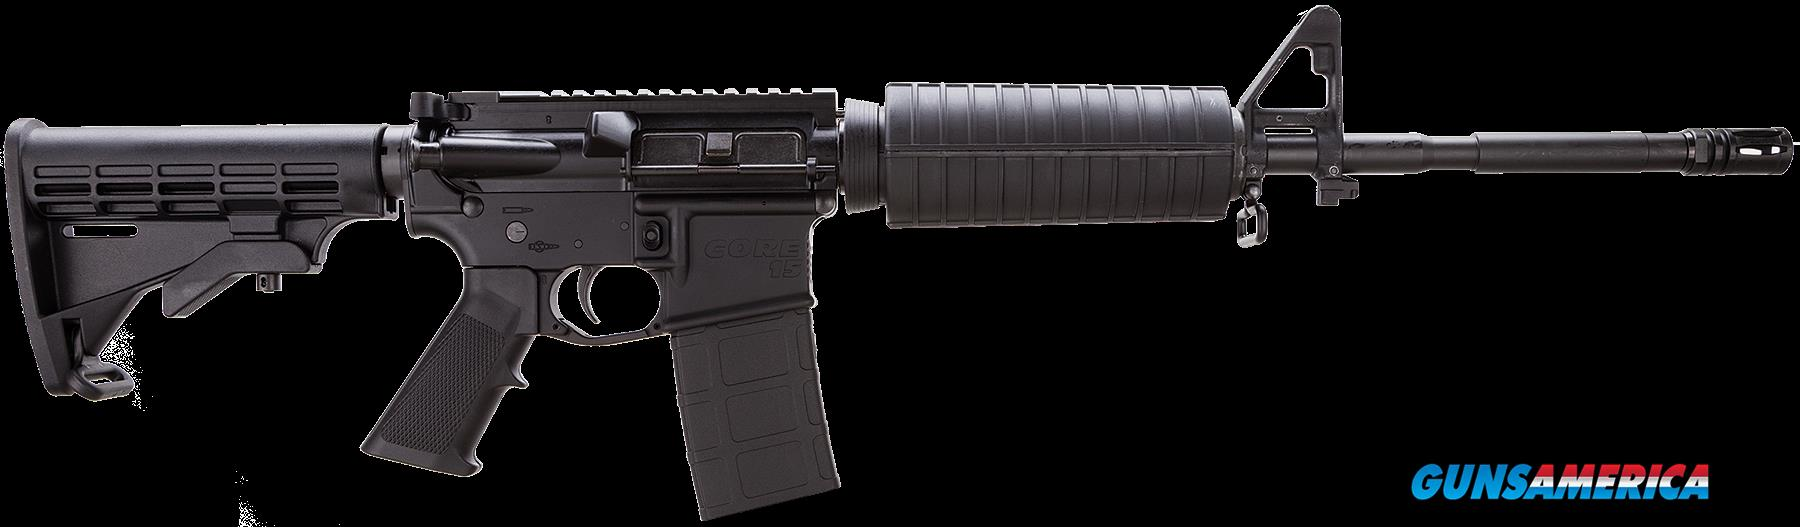 "Core 15 Rifle Systems 100284 M4 AR-15 Base SA 223/5.56 16"" 30+1 6 Pos Stk Blk  Guns > Rifles > C Misc Rifles"